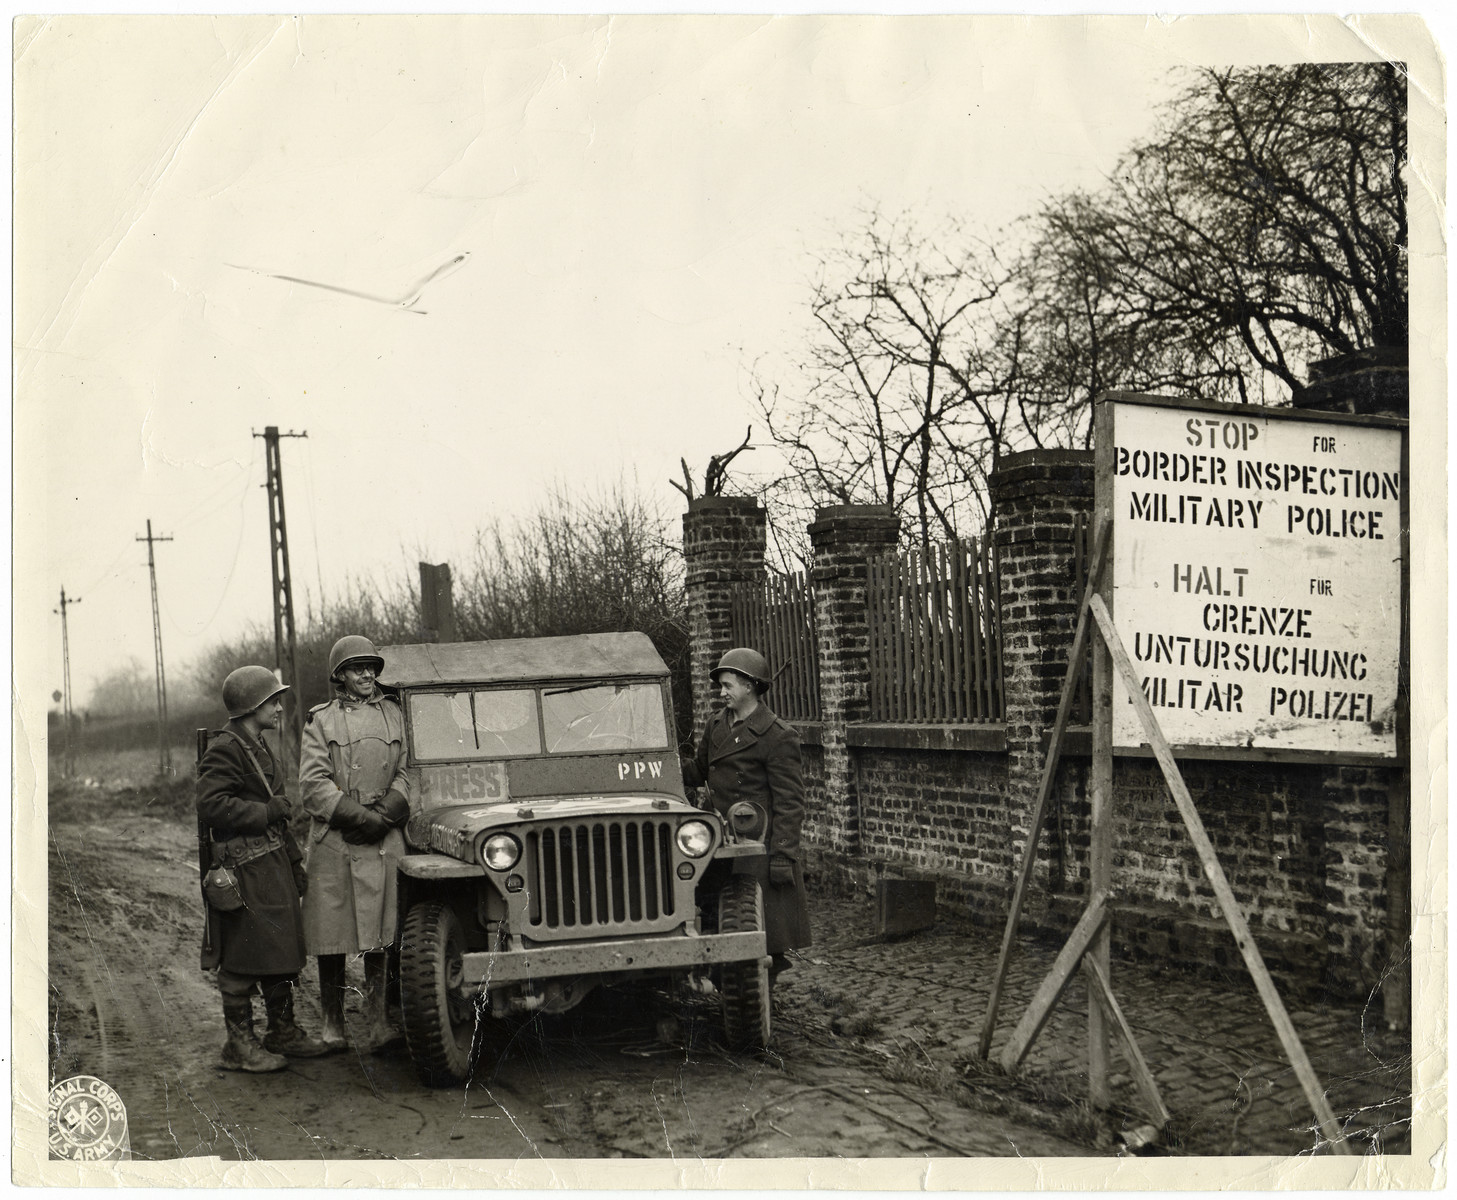 Joseph W. Eaton and Mr. C.W. Kingdon passing the border of Germany on their way to make a reportage on Christmas in Germany in 1944.   They interviewed German POWs and broadcast their greetings back to their families on Radio Luxembourg.